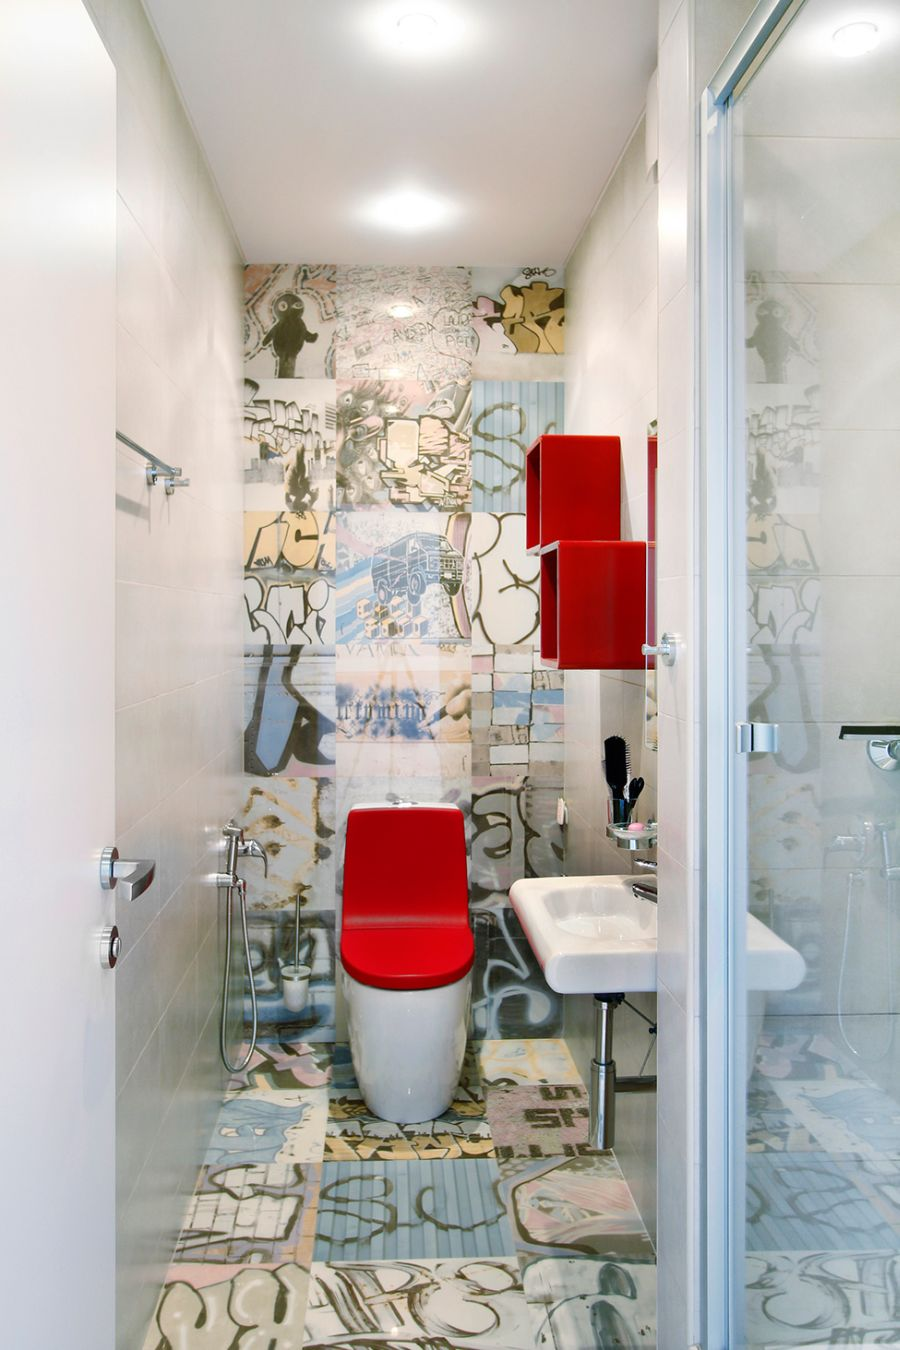 Bright red accents in the toilet